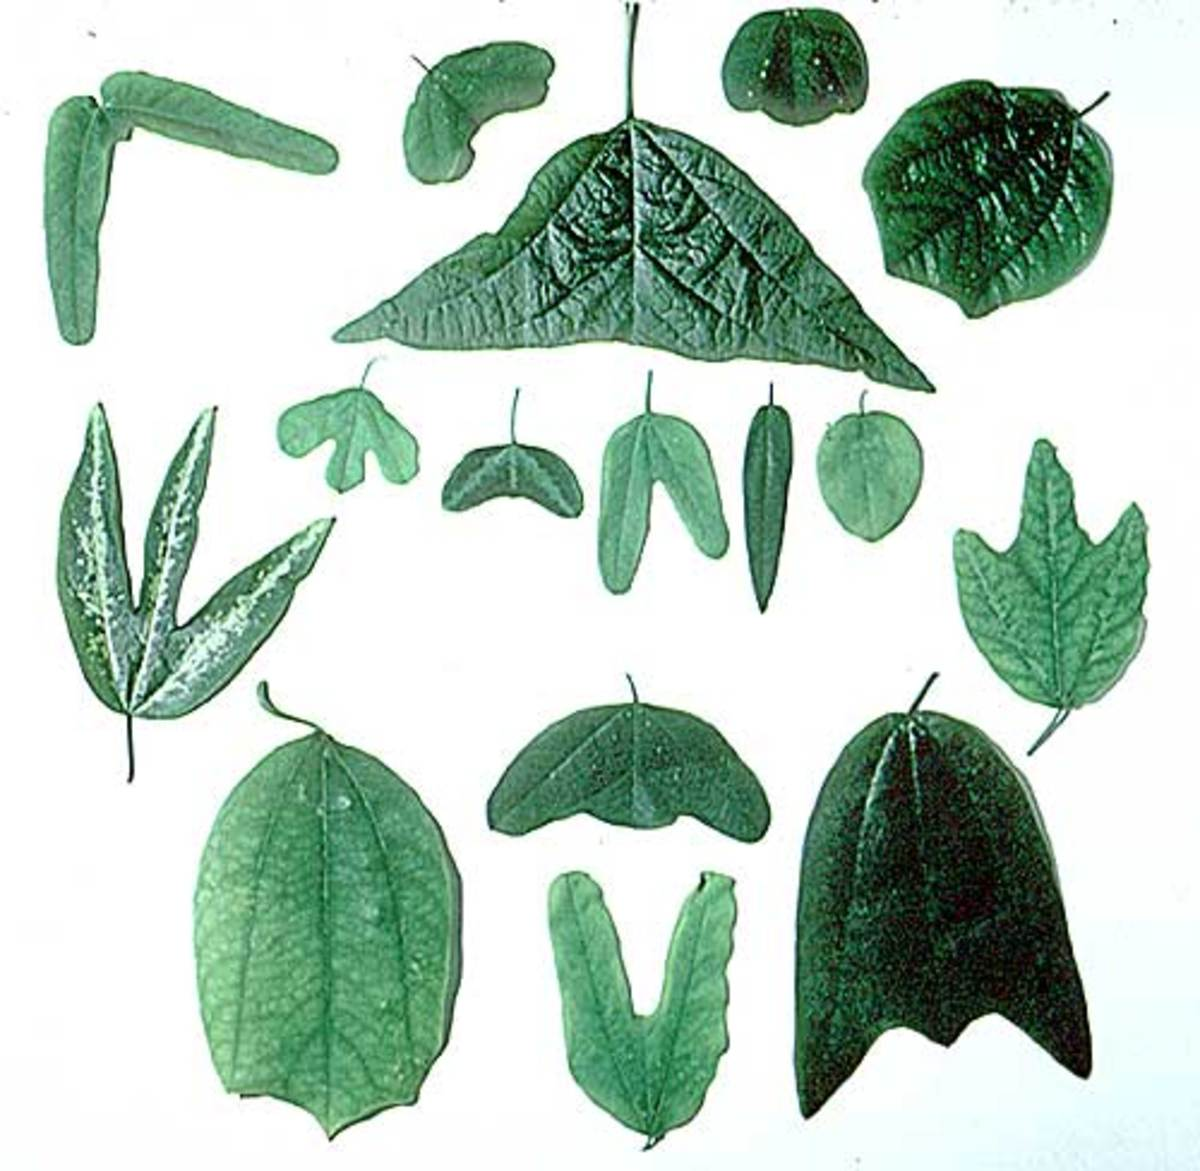 Diversity of Passiflora leaf shapes.